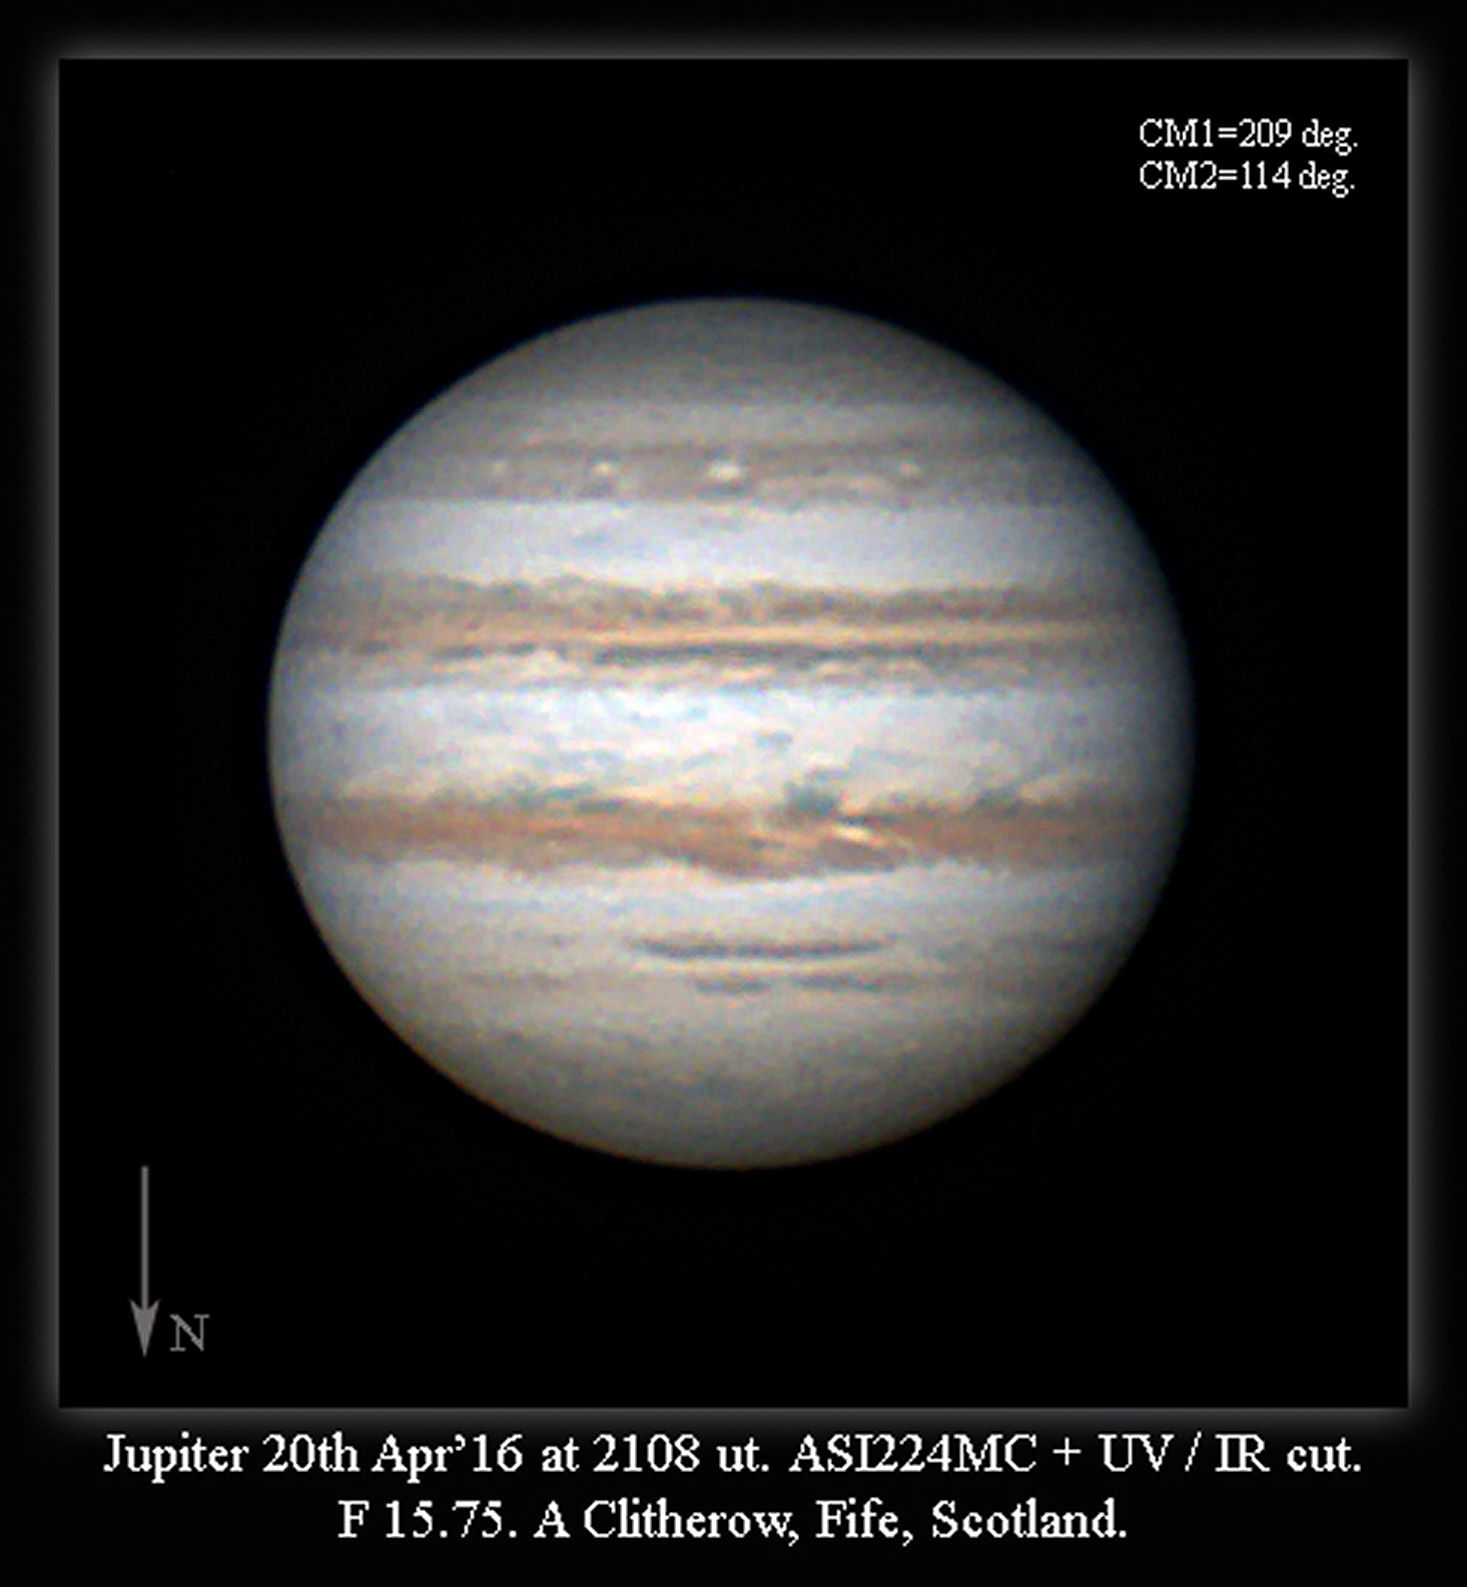 Jupiter 20th April 2016 by Alan Clitherow.  This image from the 20th was very satisfactory. If only we had atmospheric steadiness like this all the time!